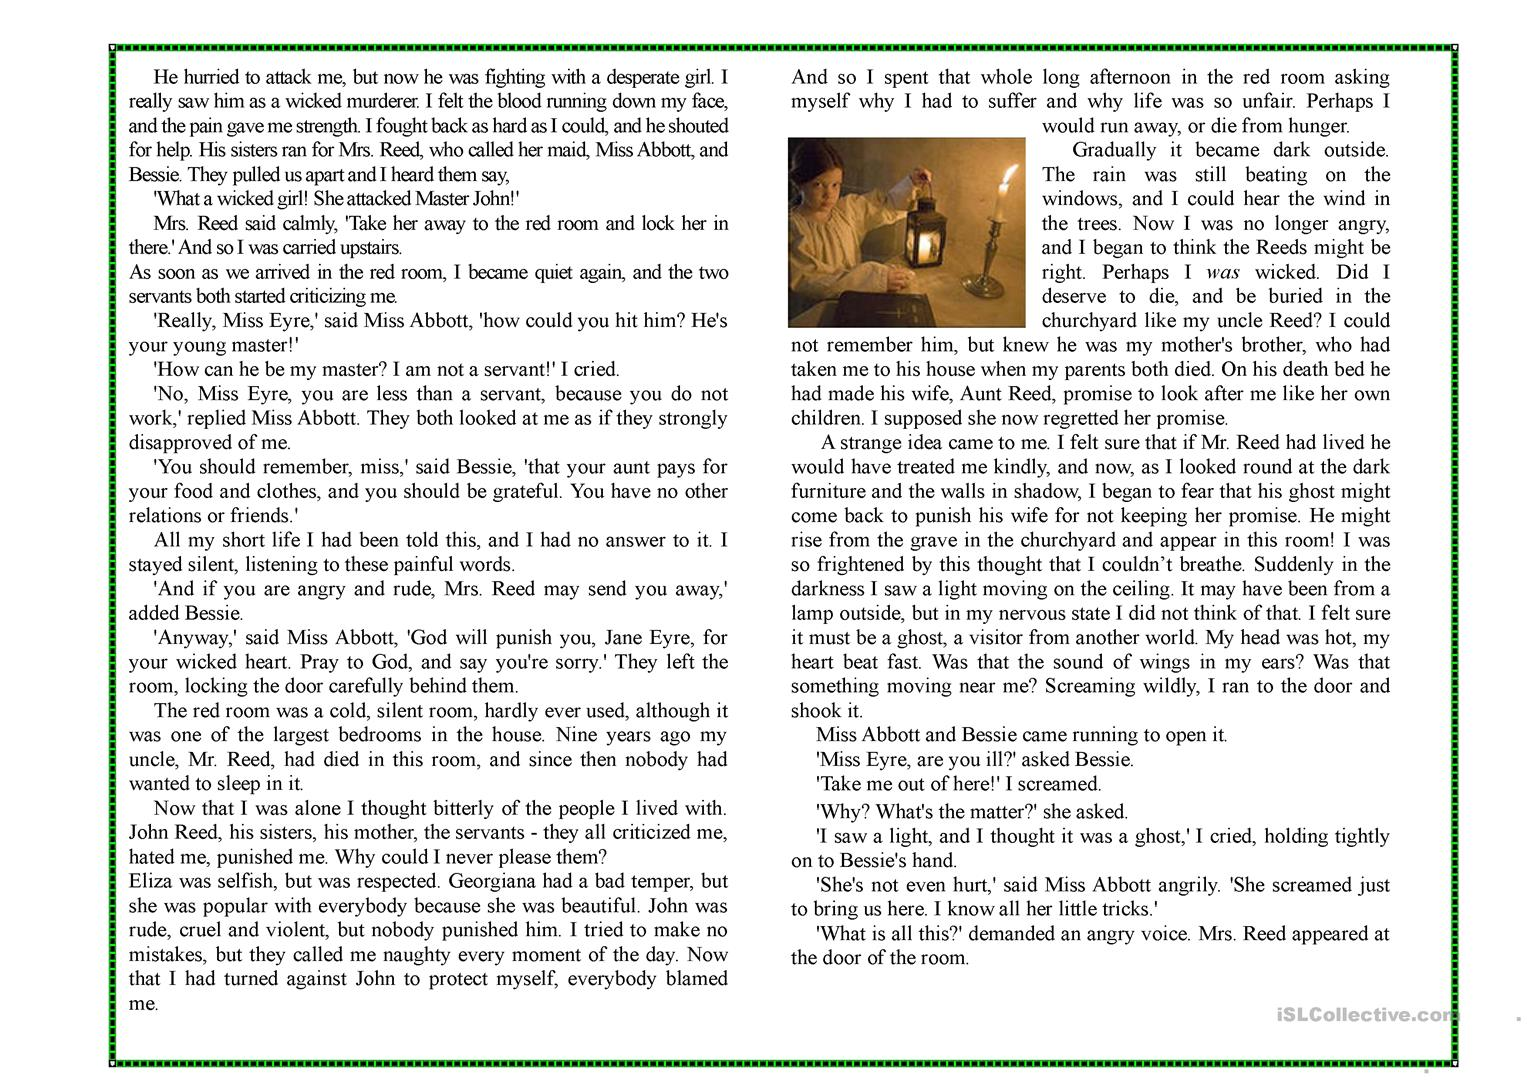 chapter 1 rogue jane and i essay Jane eyre character developments and attitudes english literature essay jane eyre character developments and attitudes next in the chapter, jane meets mr.